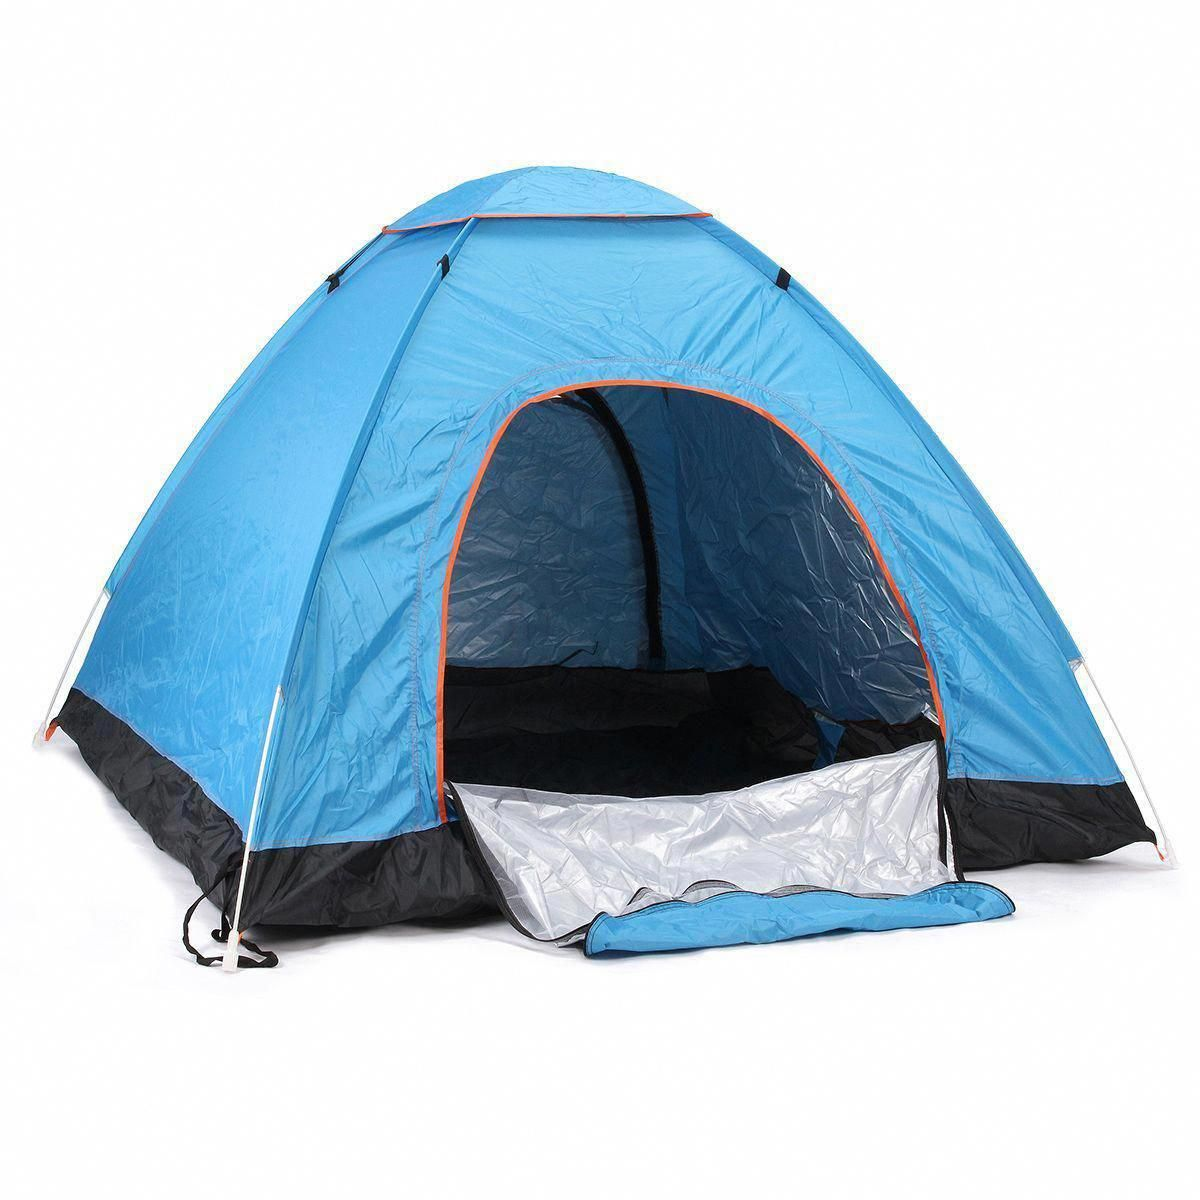 I Love Camping With My Tent Tentsforcamping 4 Person Camping Tent Tent Best Tents For Camping